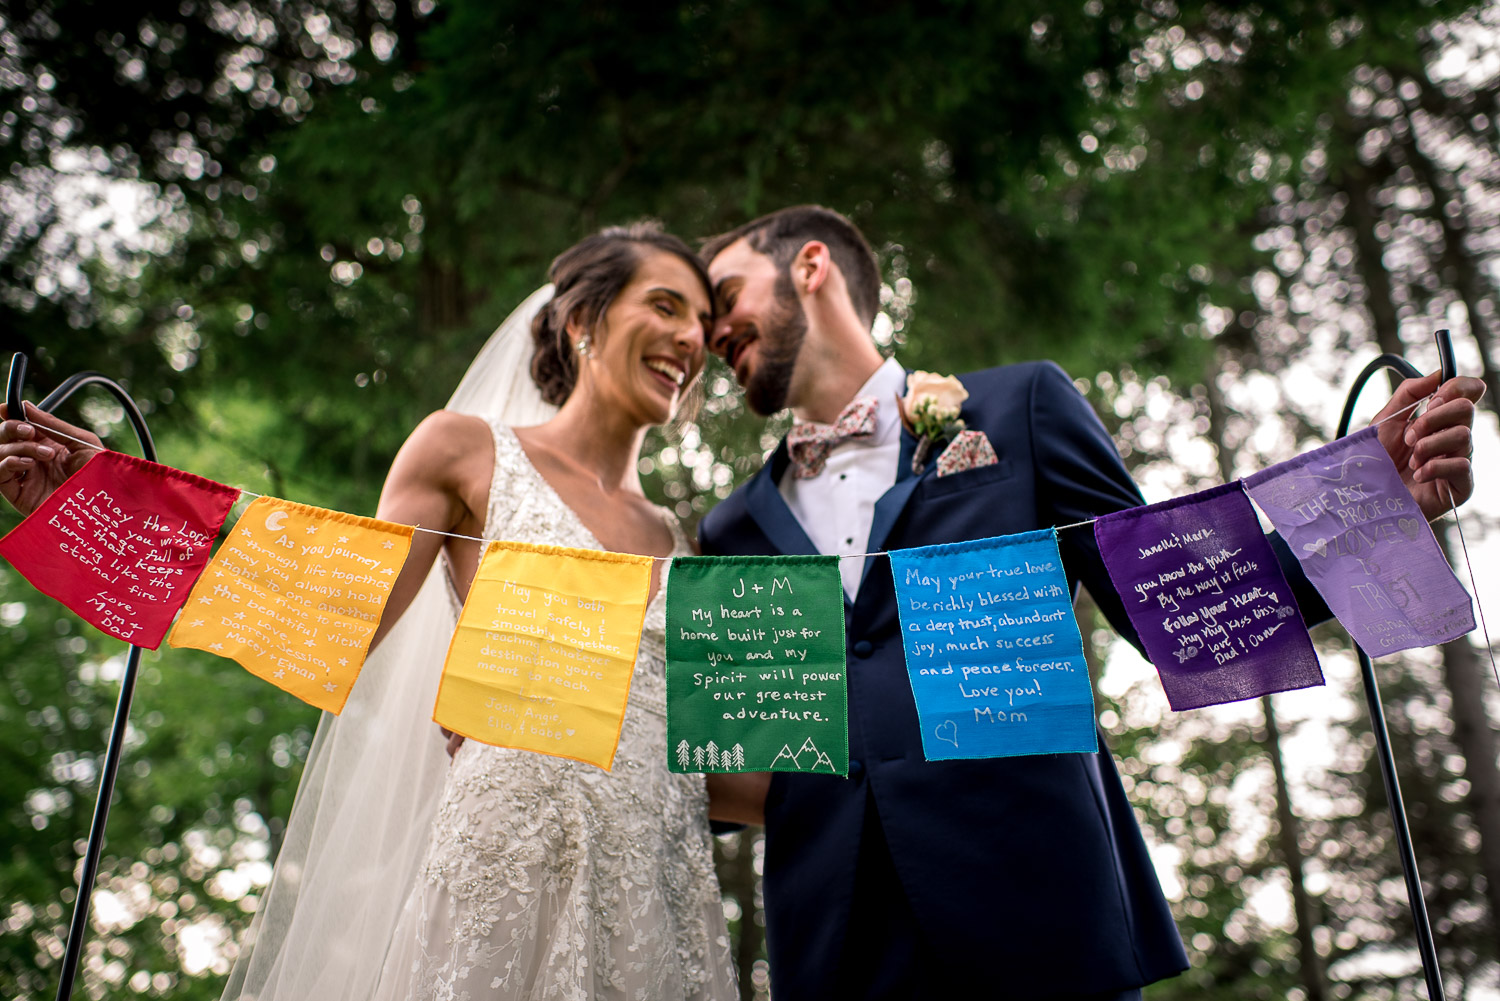 bride and groom posing with prayer flags in the forest